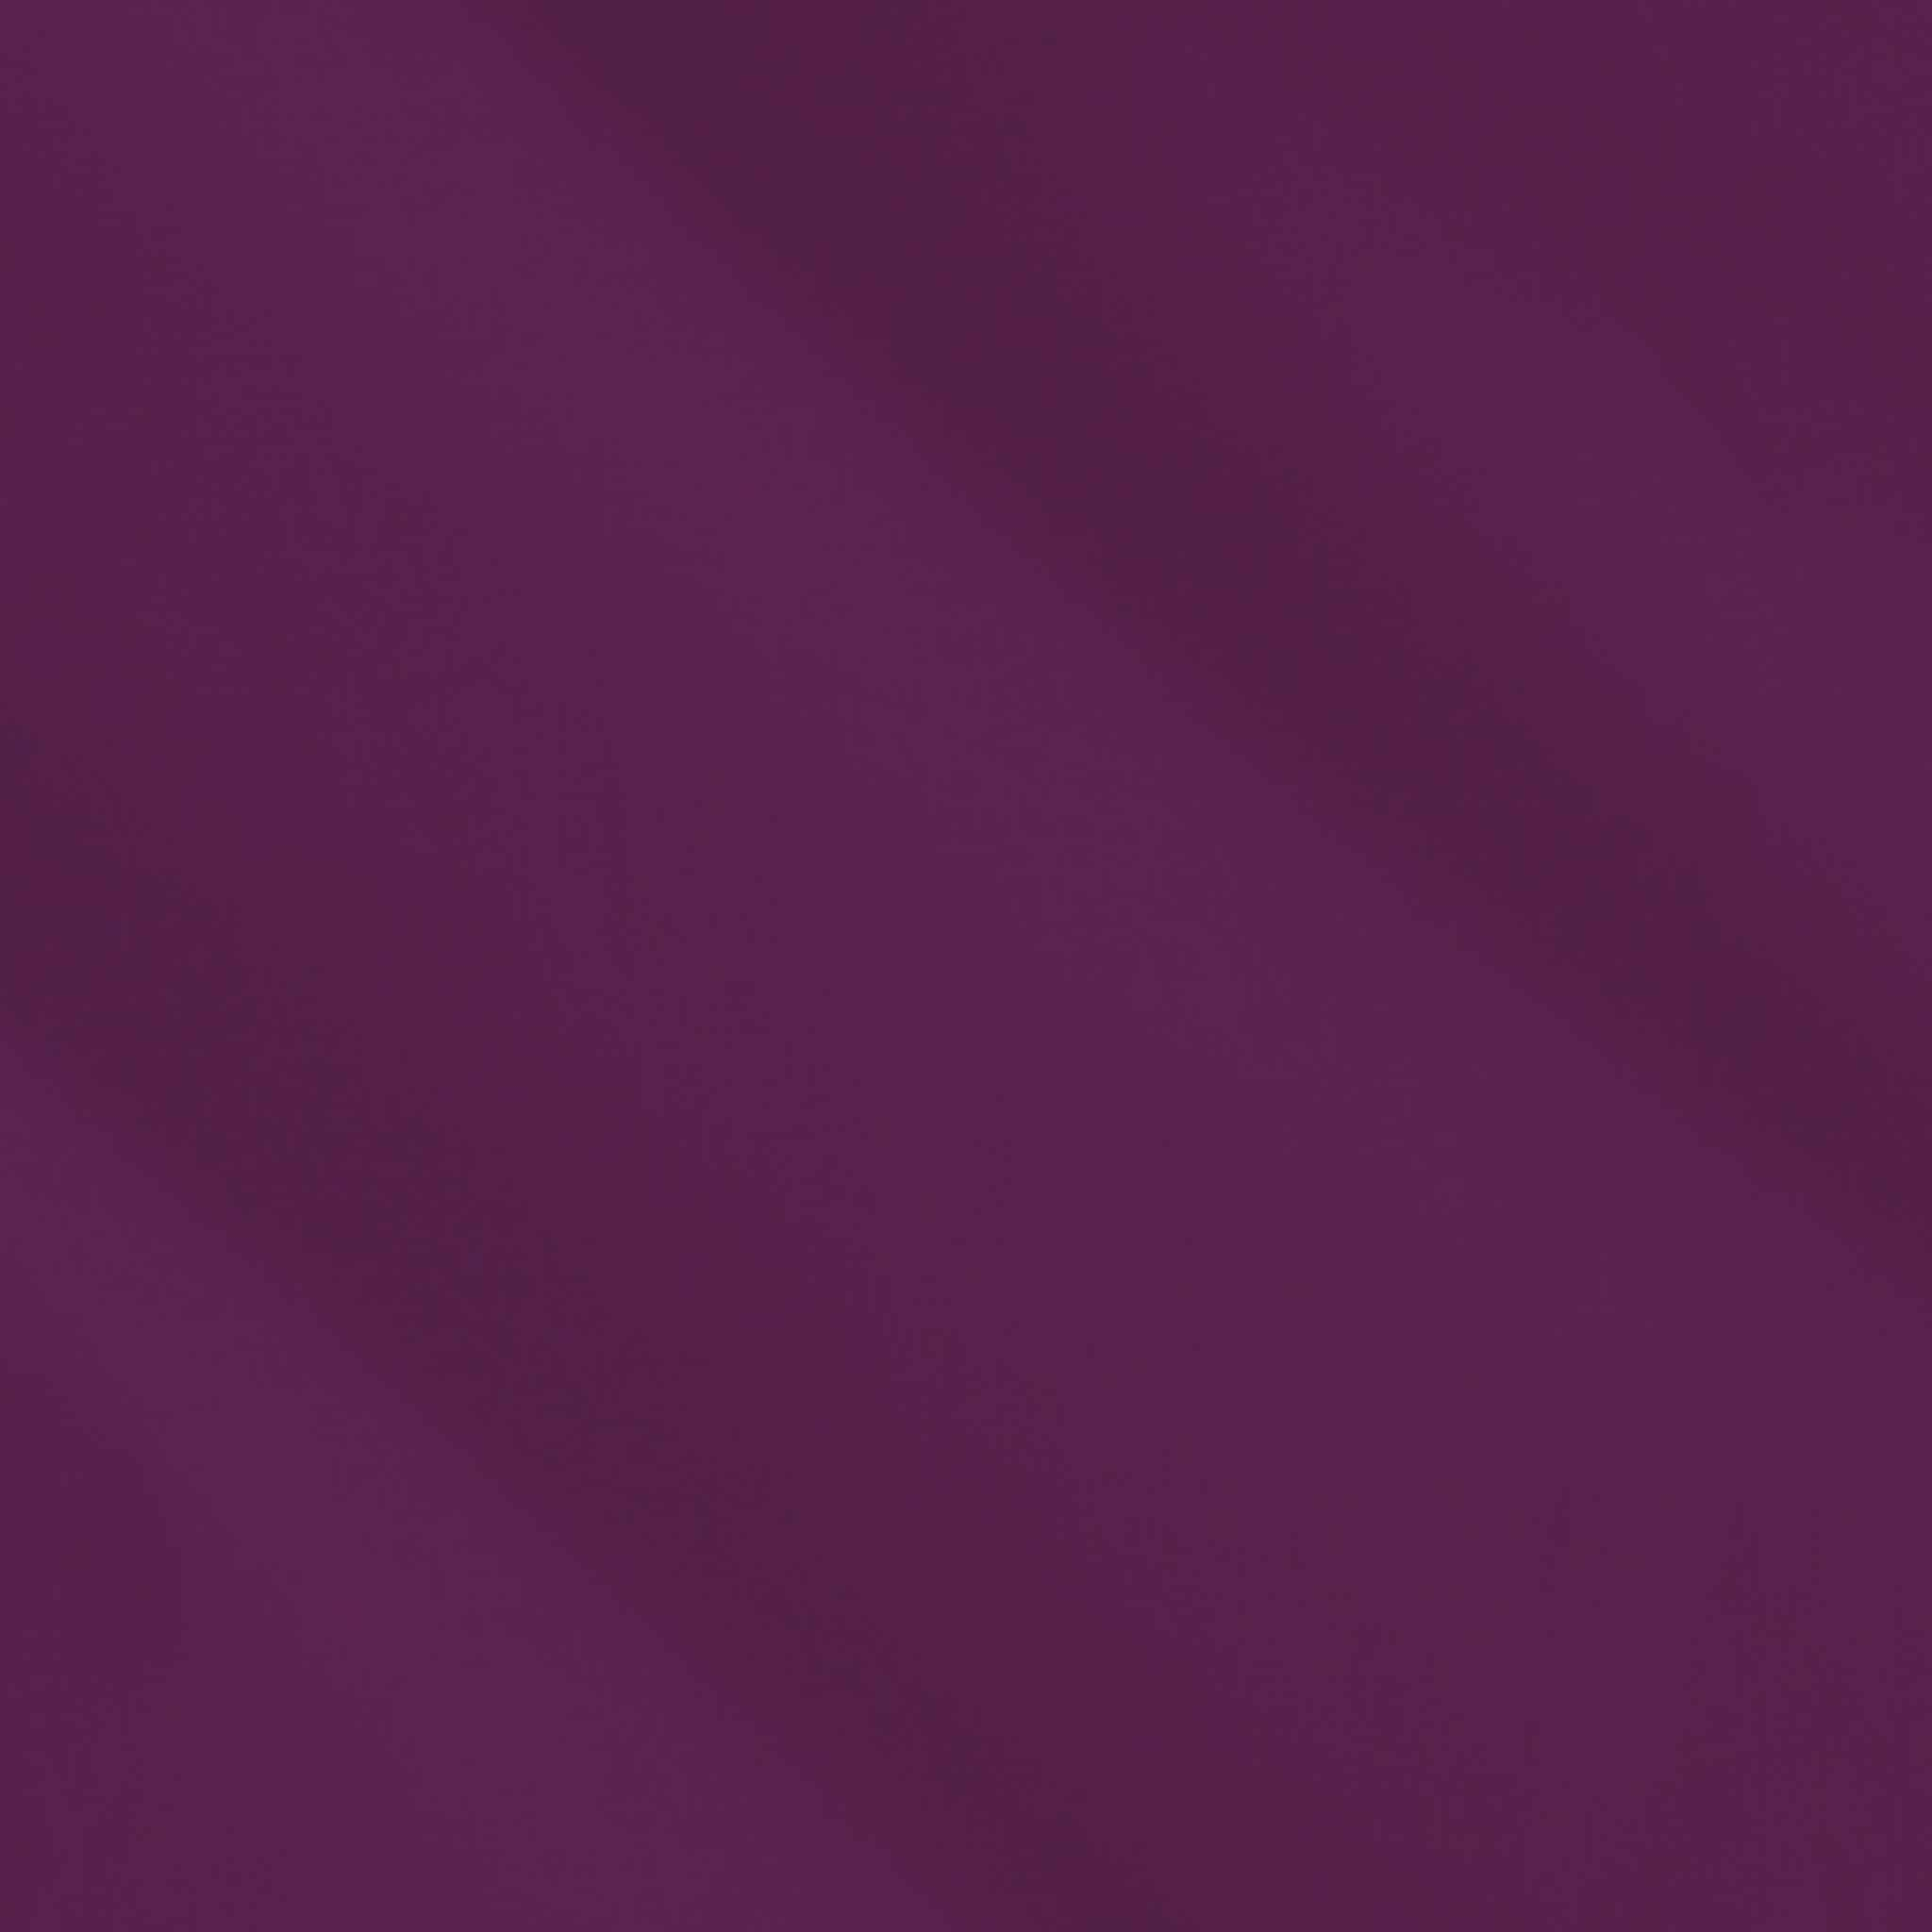 Real Purple Cotton Fabric by Makower, 2000/L48, Spectrum Basics Collection - Fabric and Ribbon